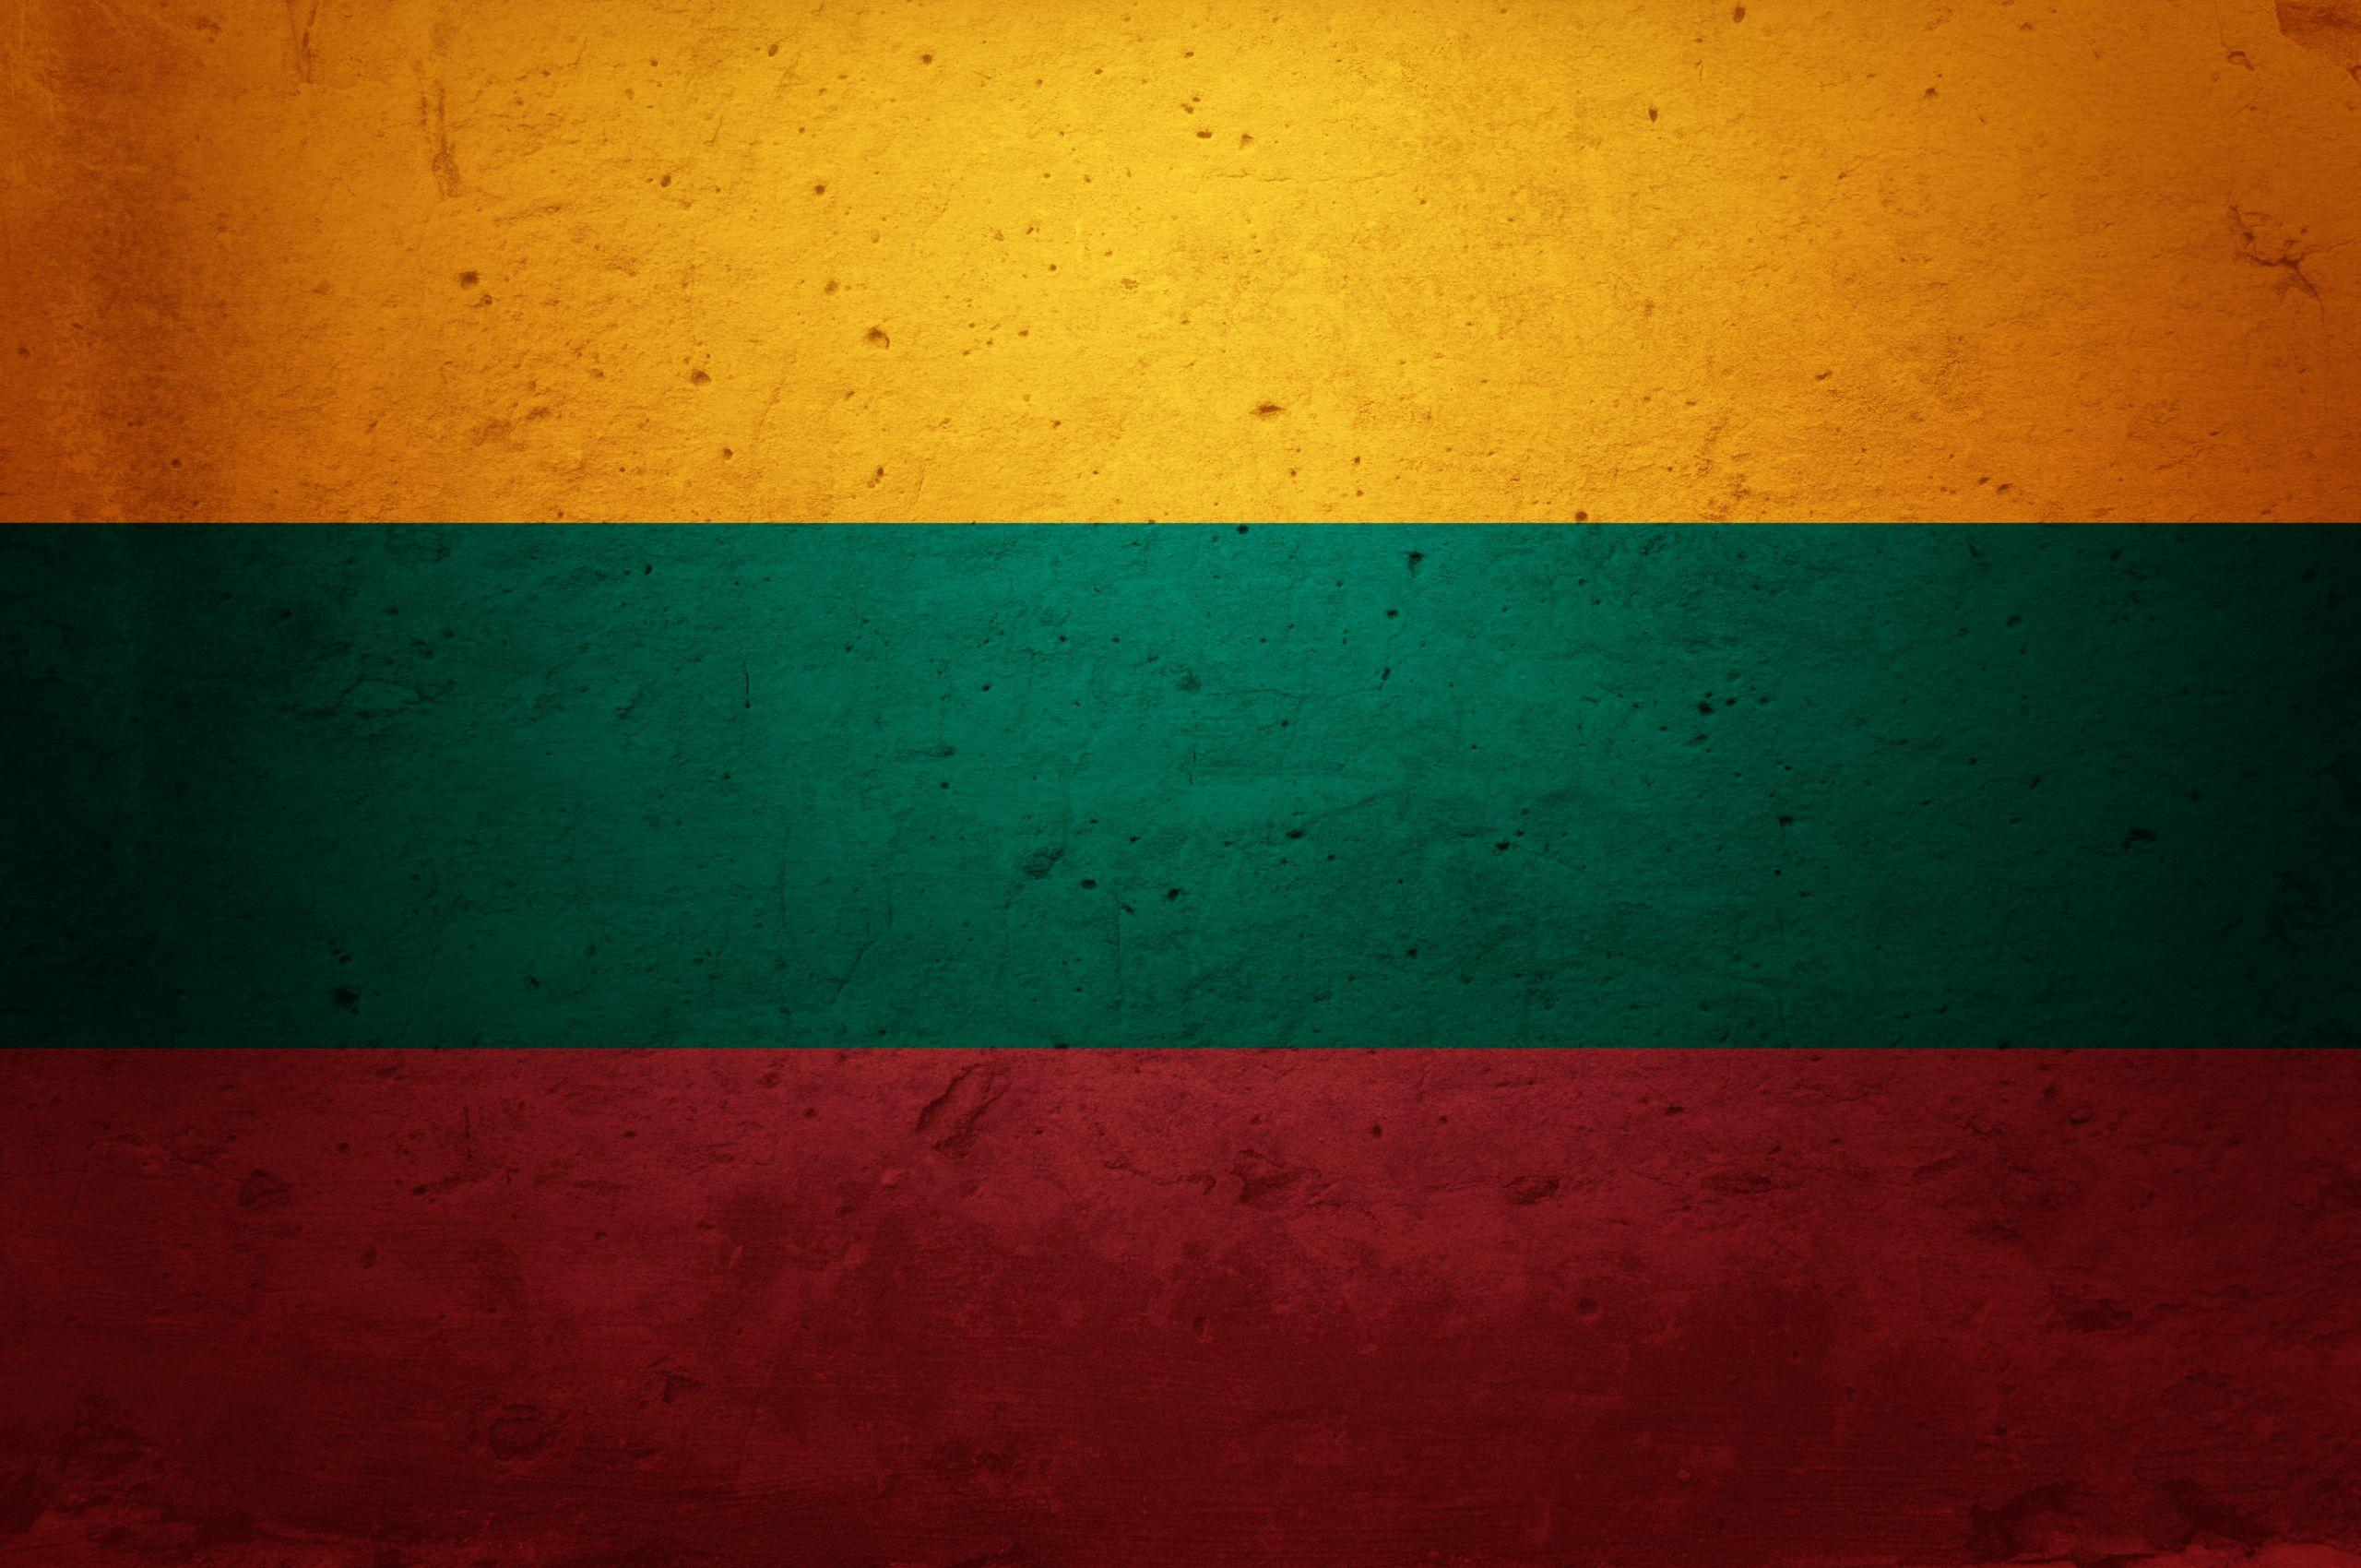 3 Flag Of Lithuania HD Wallpapers | Backgrounds - Wallpaper Abyss